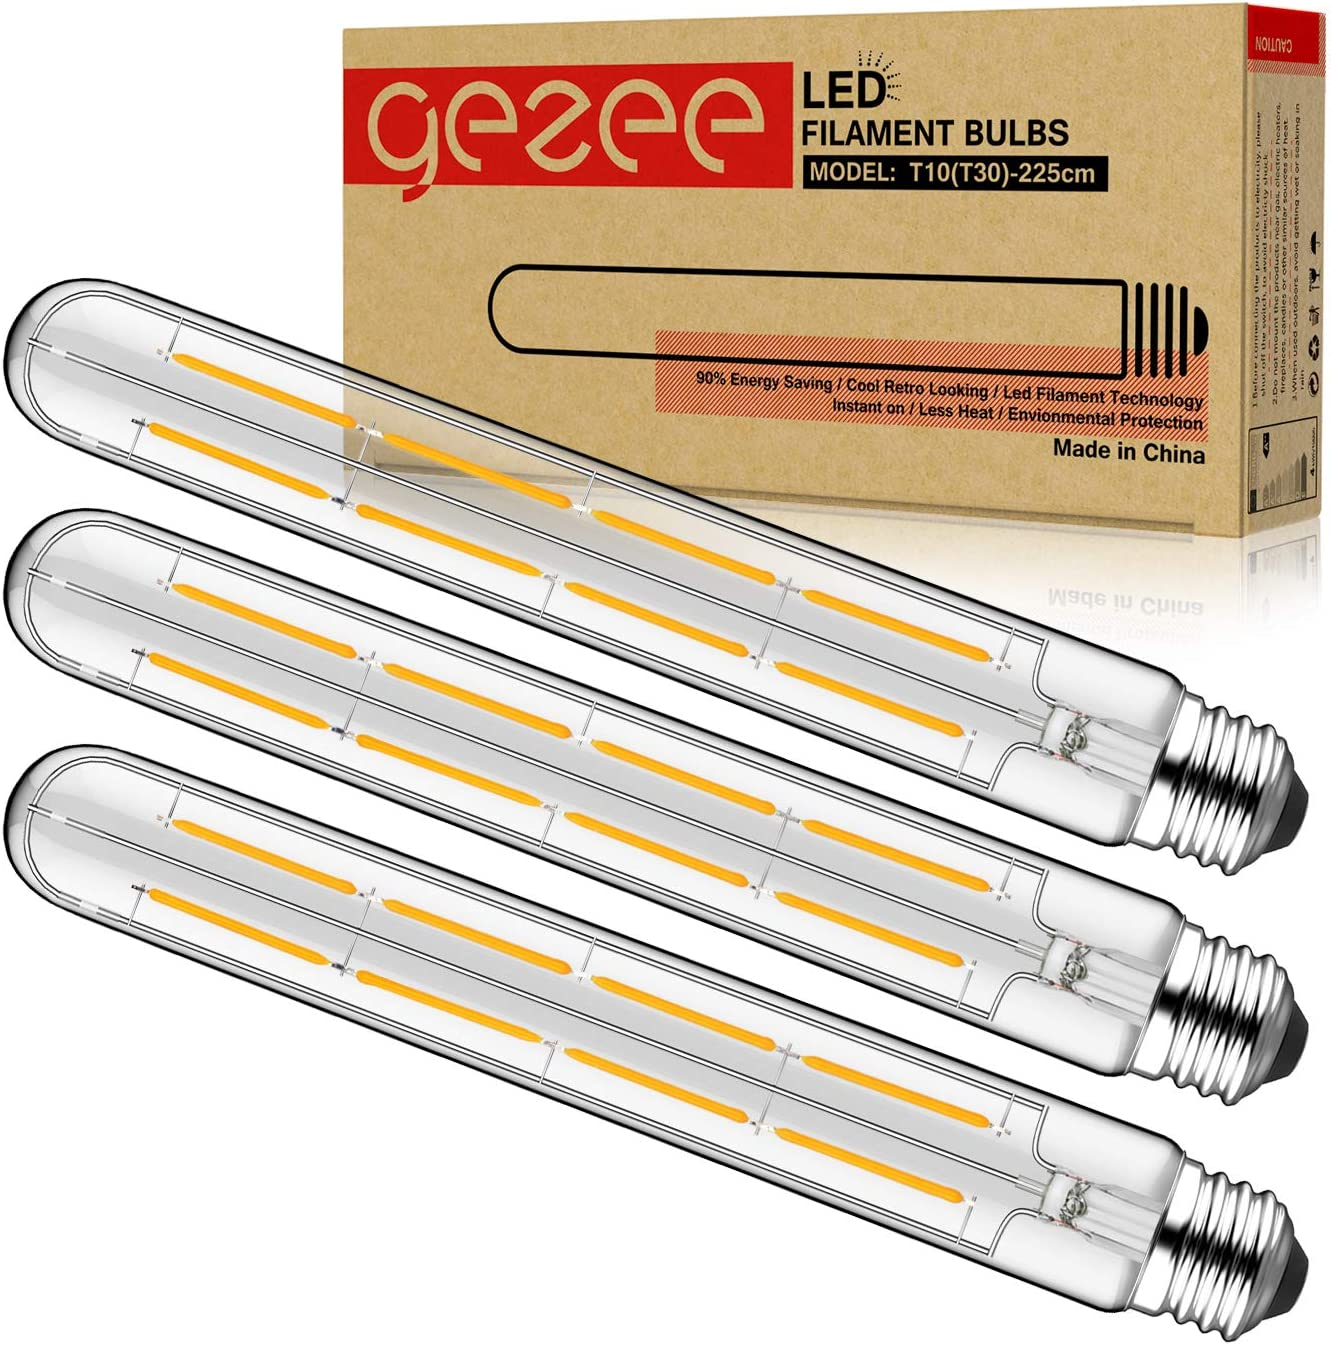 GEZEE T10(T30),8.9in(225mm), 3-Pack,Dimmable 8W Long Tube Decorative Light Bulb,Edison Style Vintage LED Filament Light Bulb,Antique Shape, Warm White 2700K,800LM(80W Equivalent), E26 Medium Base Lamp